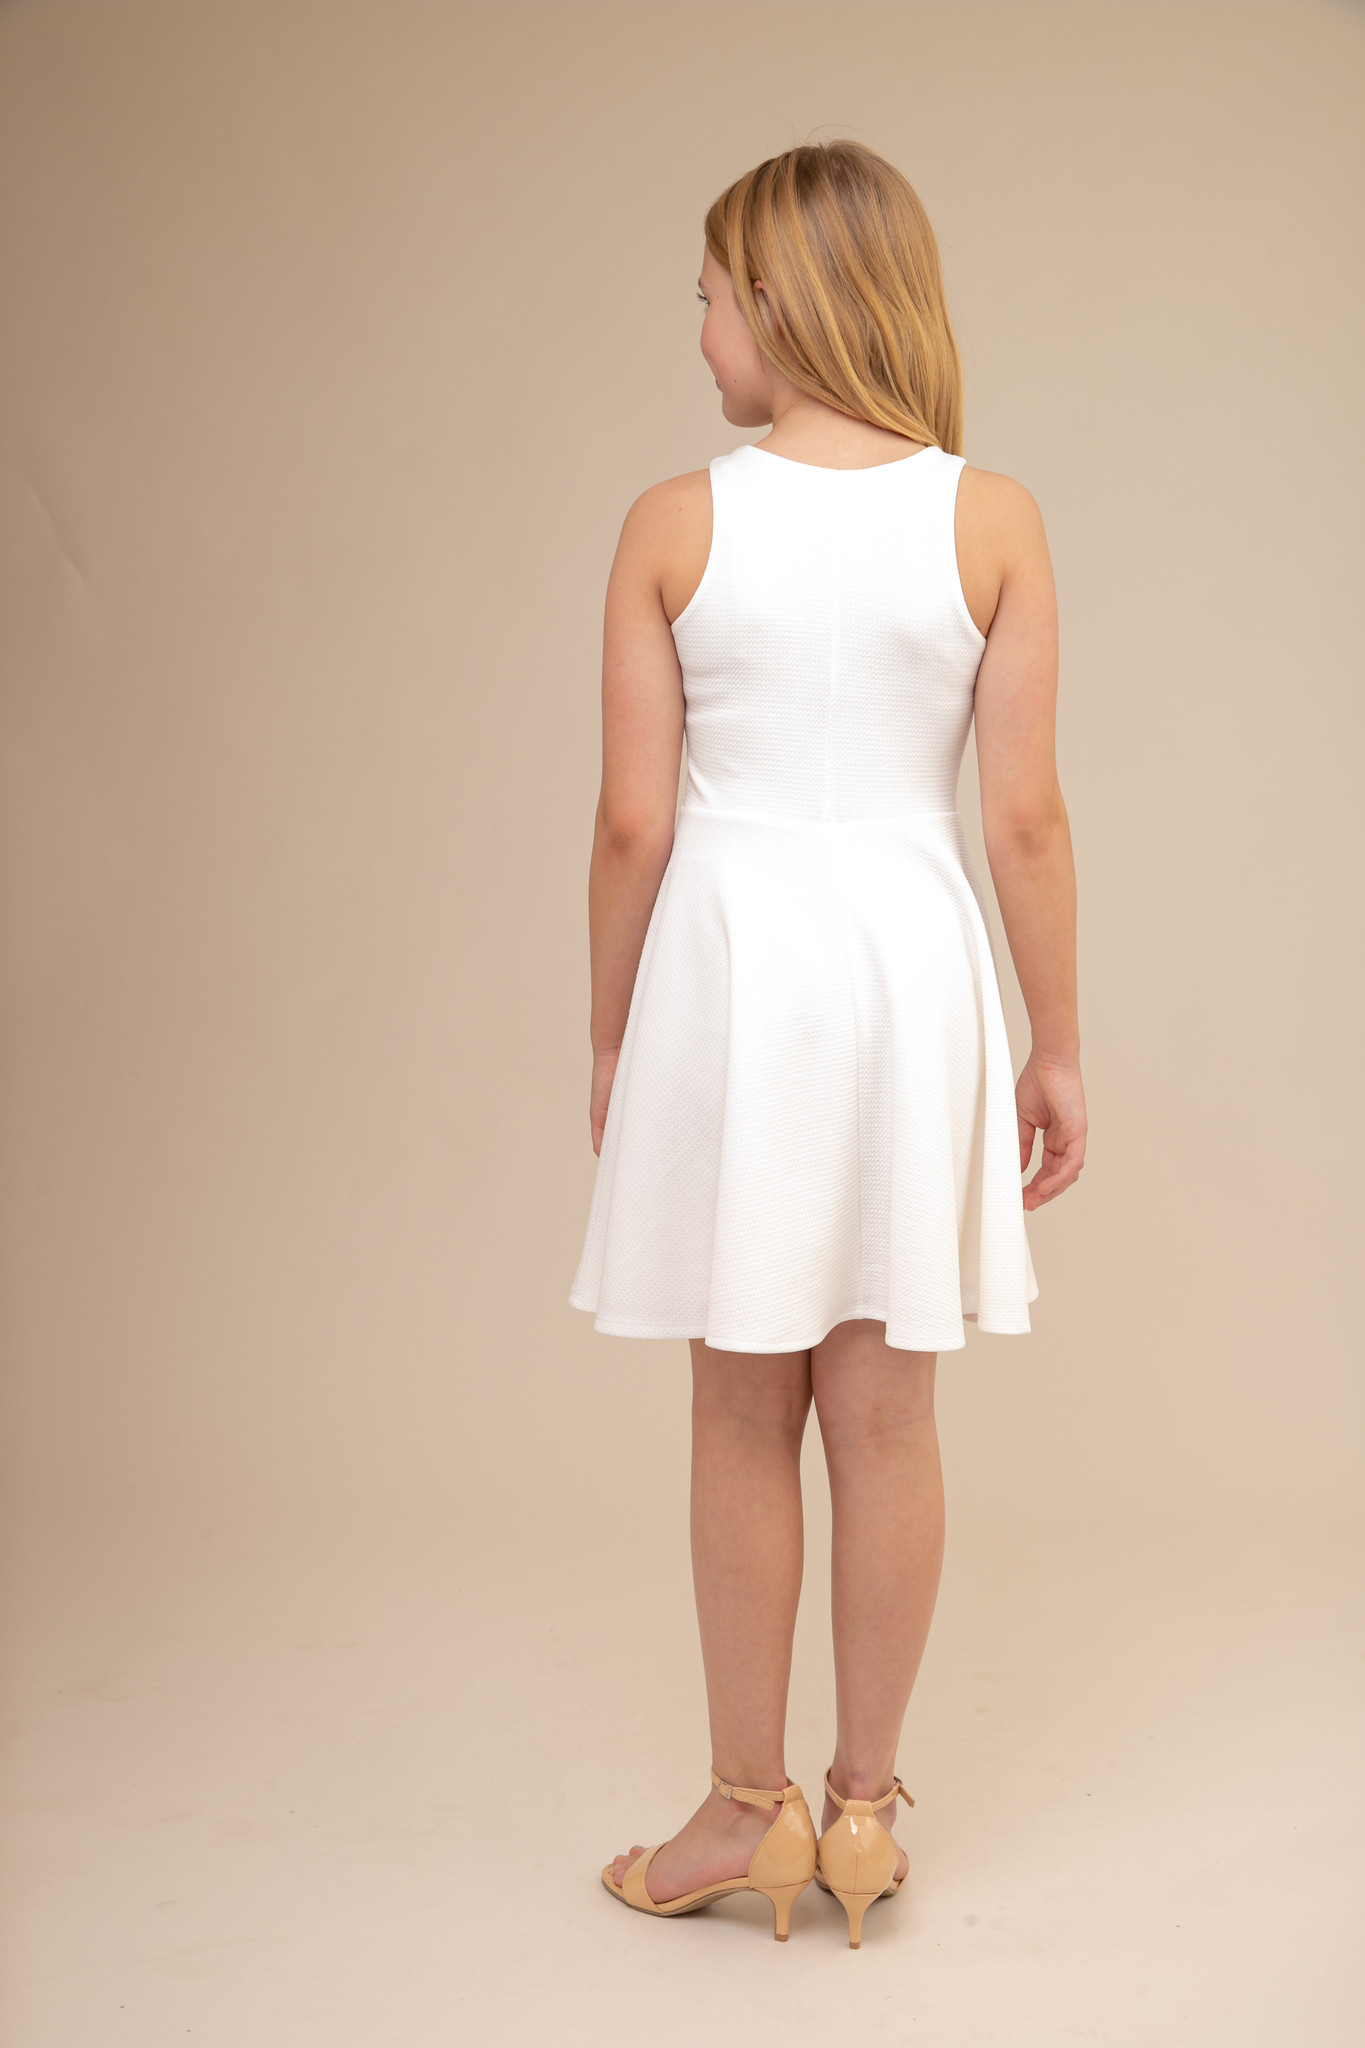 Ivory Textured Racer Back Dress in Longer Length back.